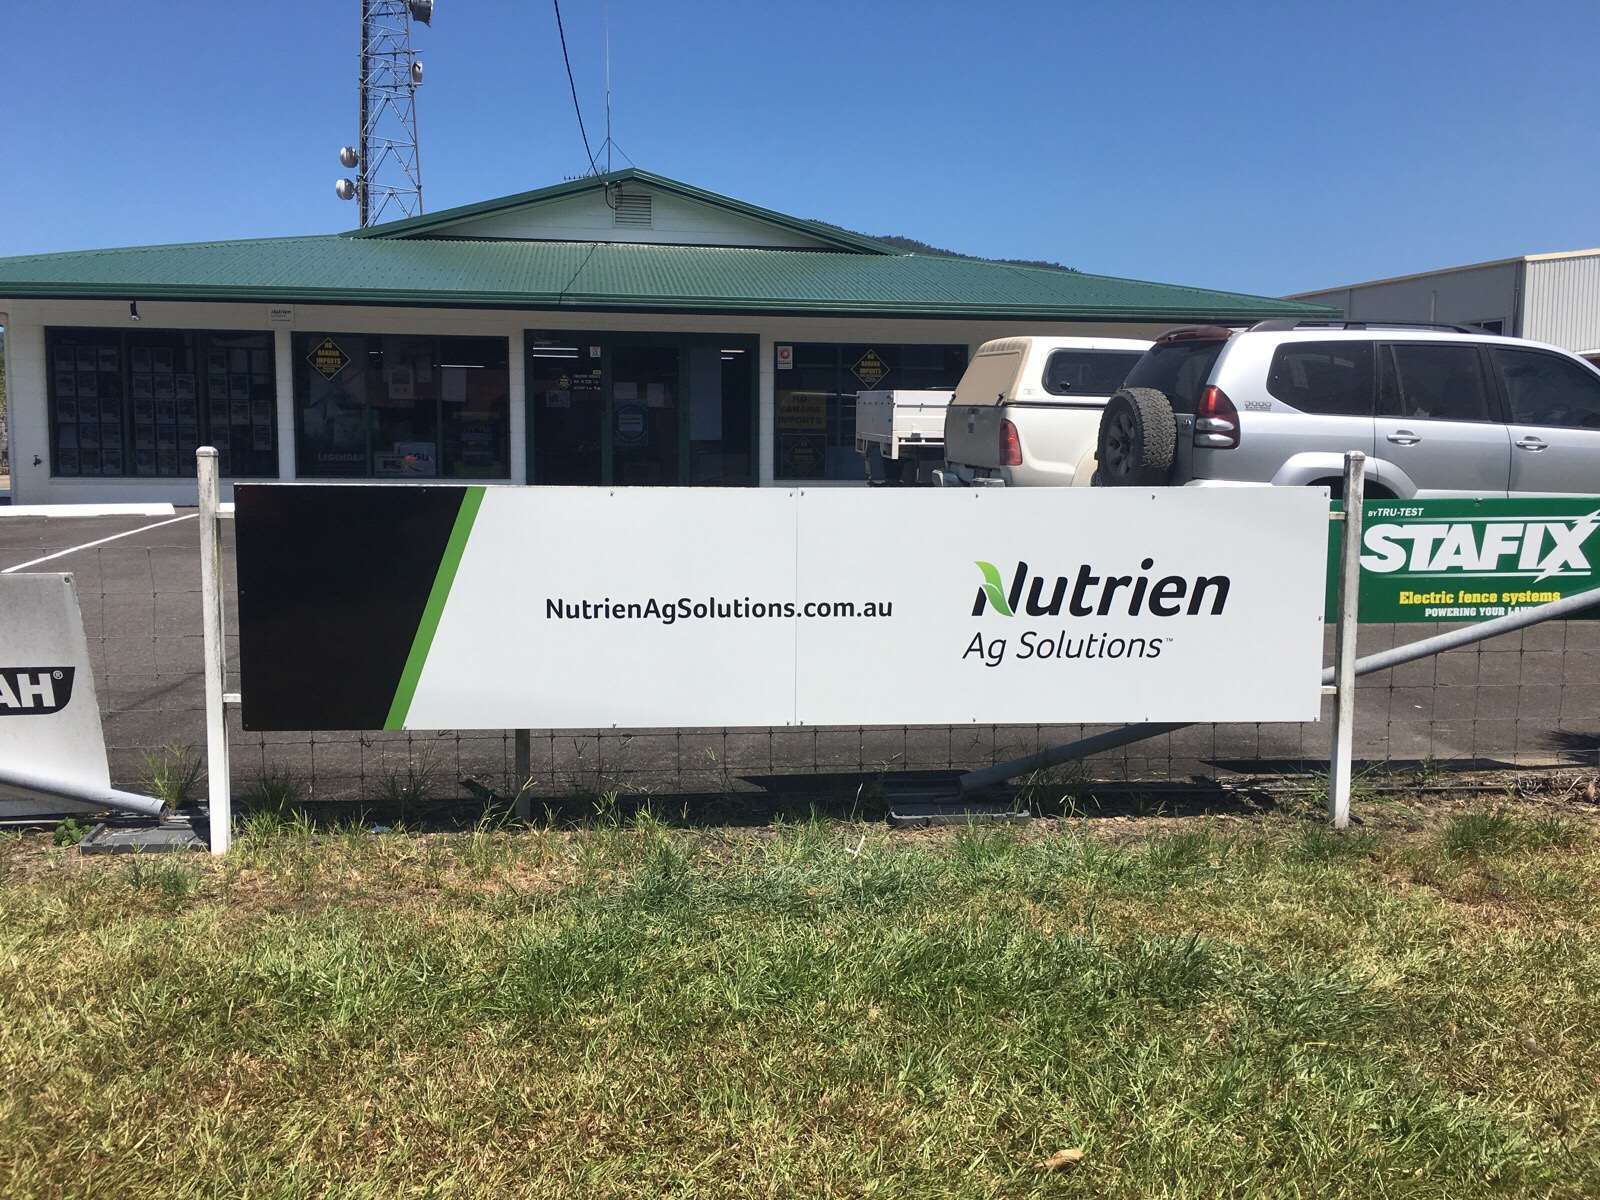 Nutrien Ag Solutions - Allenstown, QLD 4700 - 0409 059 097 | ShowMeLocal.com